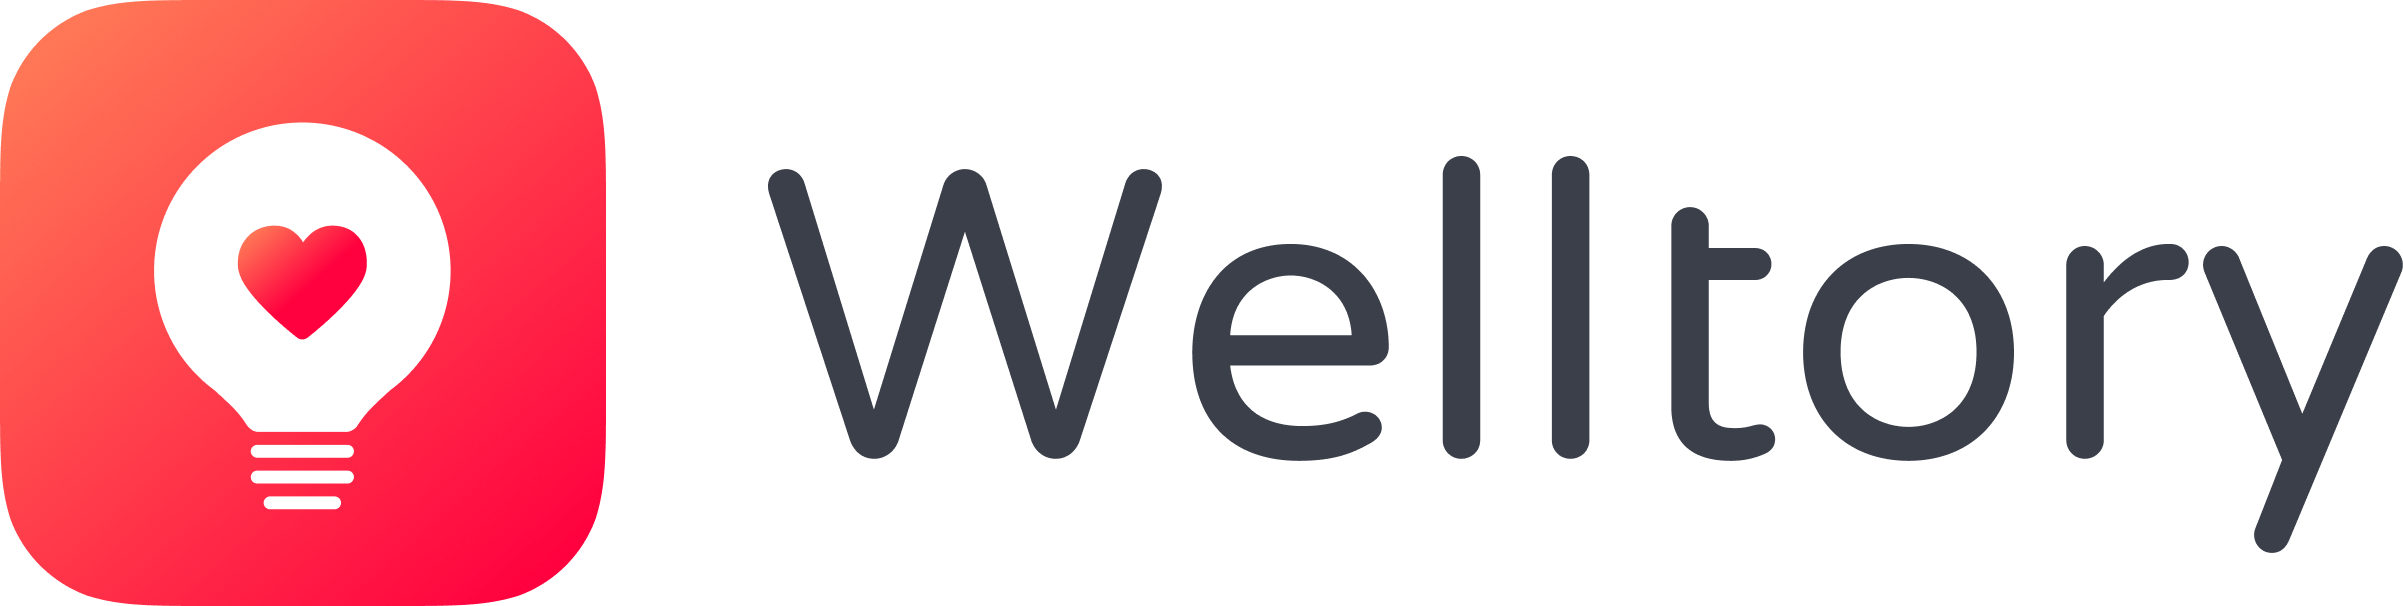 Welltory Help - Gadgets for measuring heart rate variability